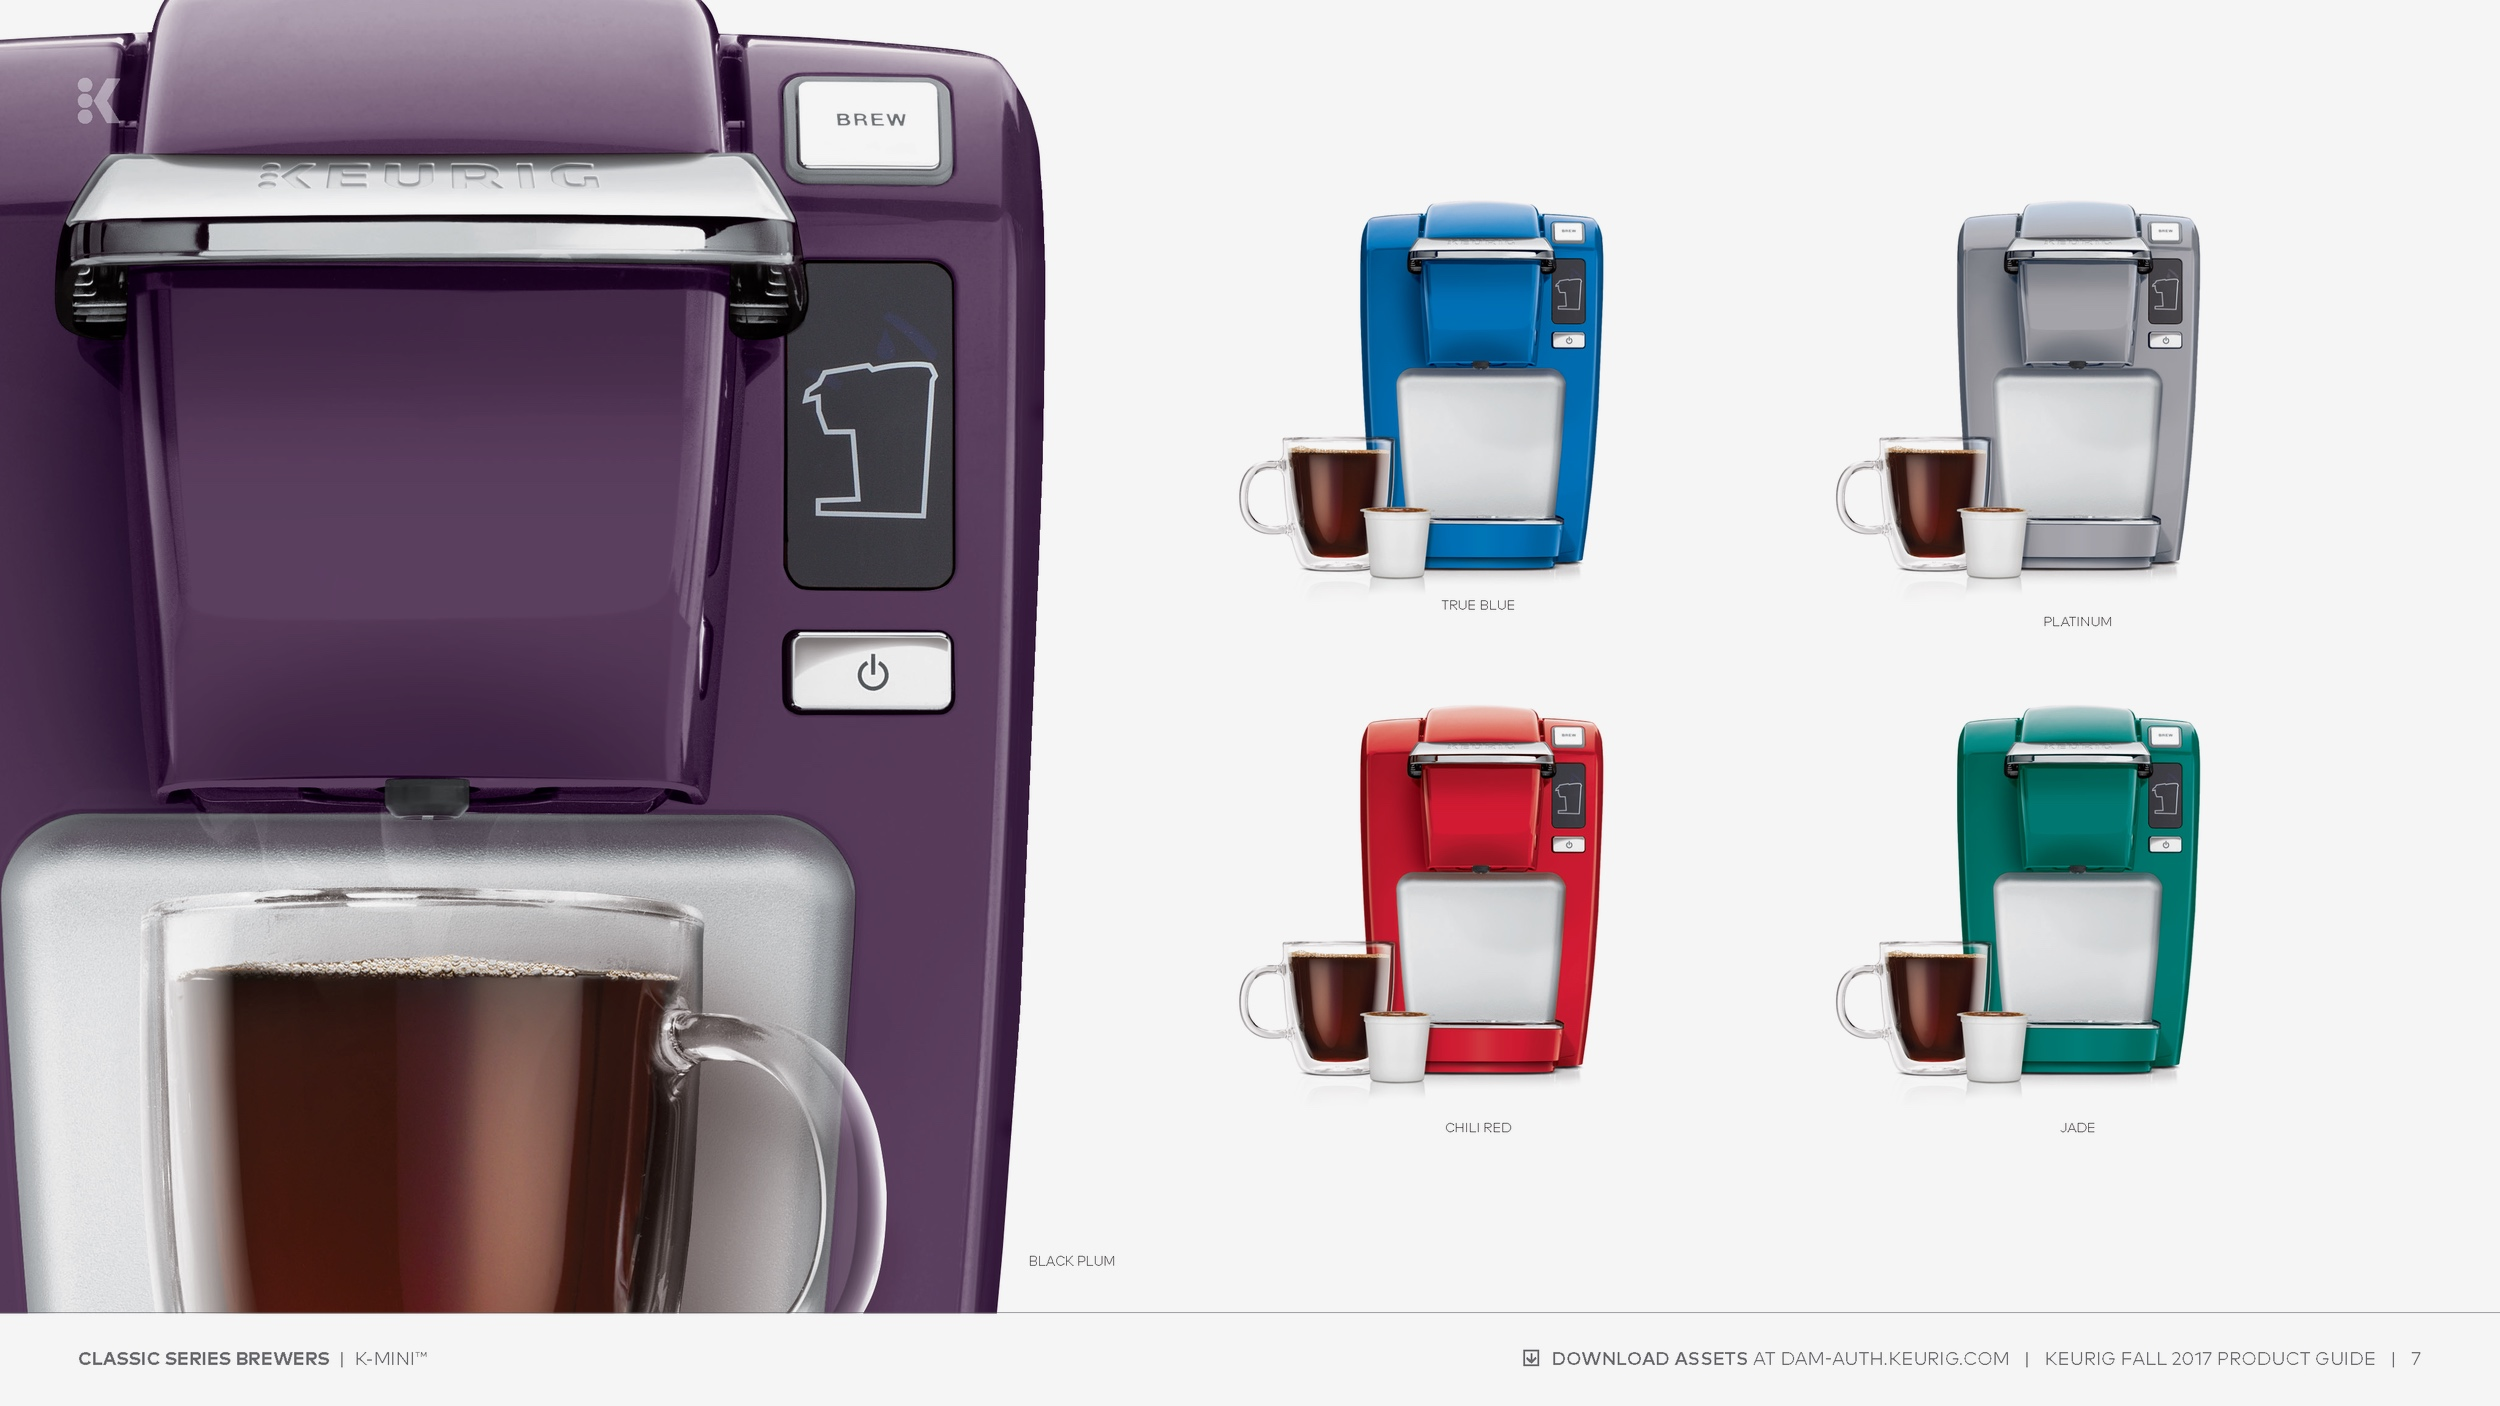 keurig_product_guide_F17_R8_Page_07.png